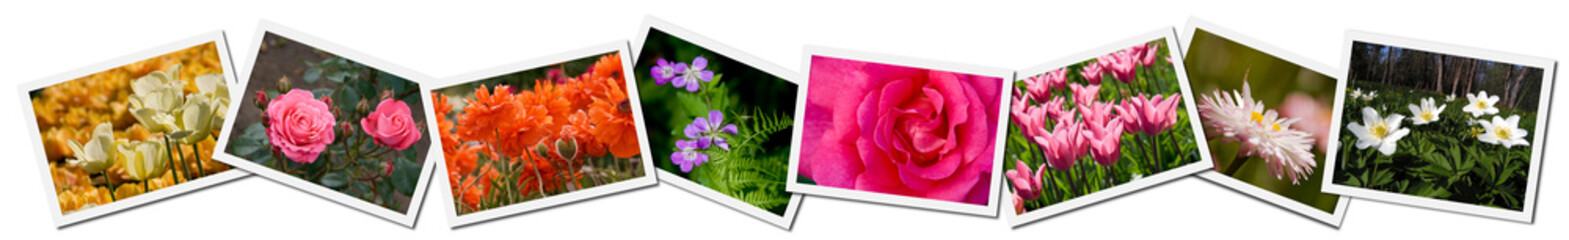 Collage of flower photographs